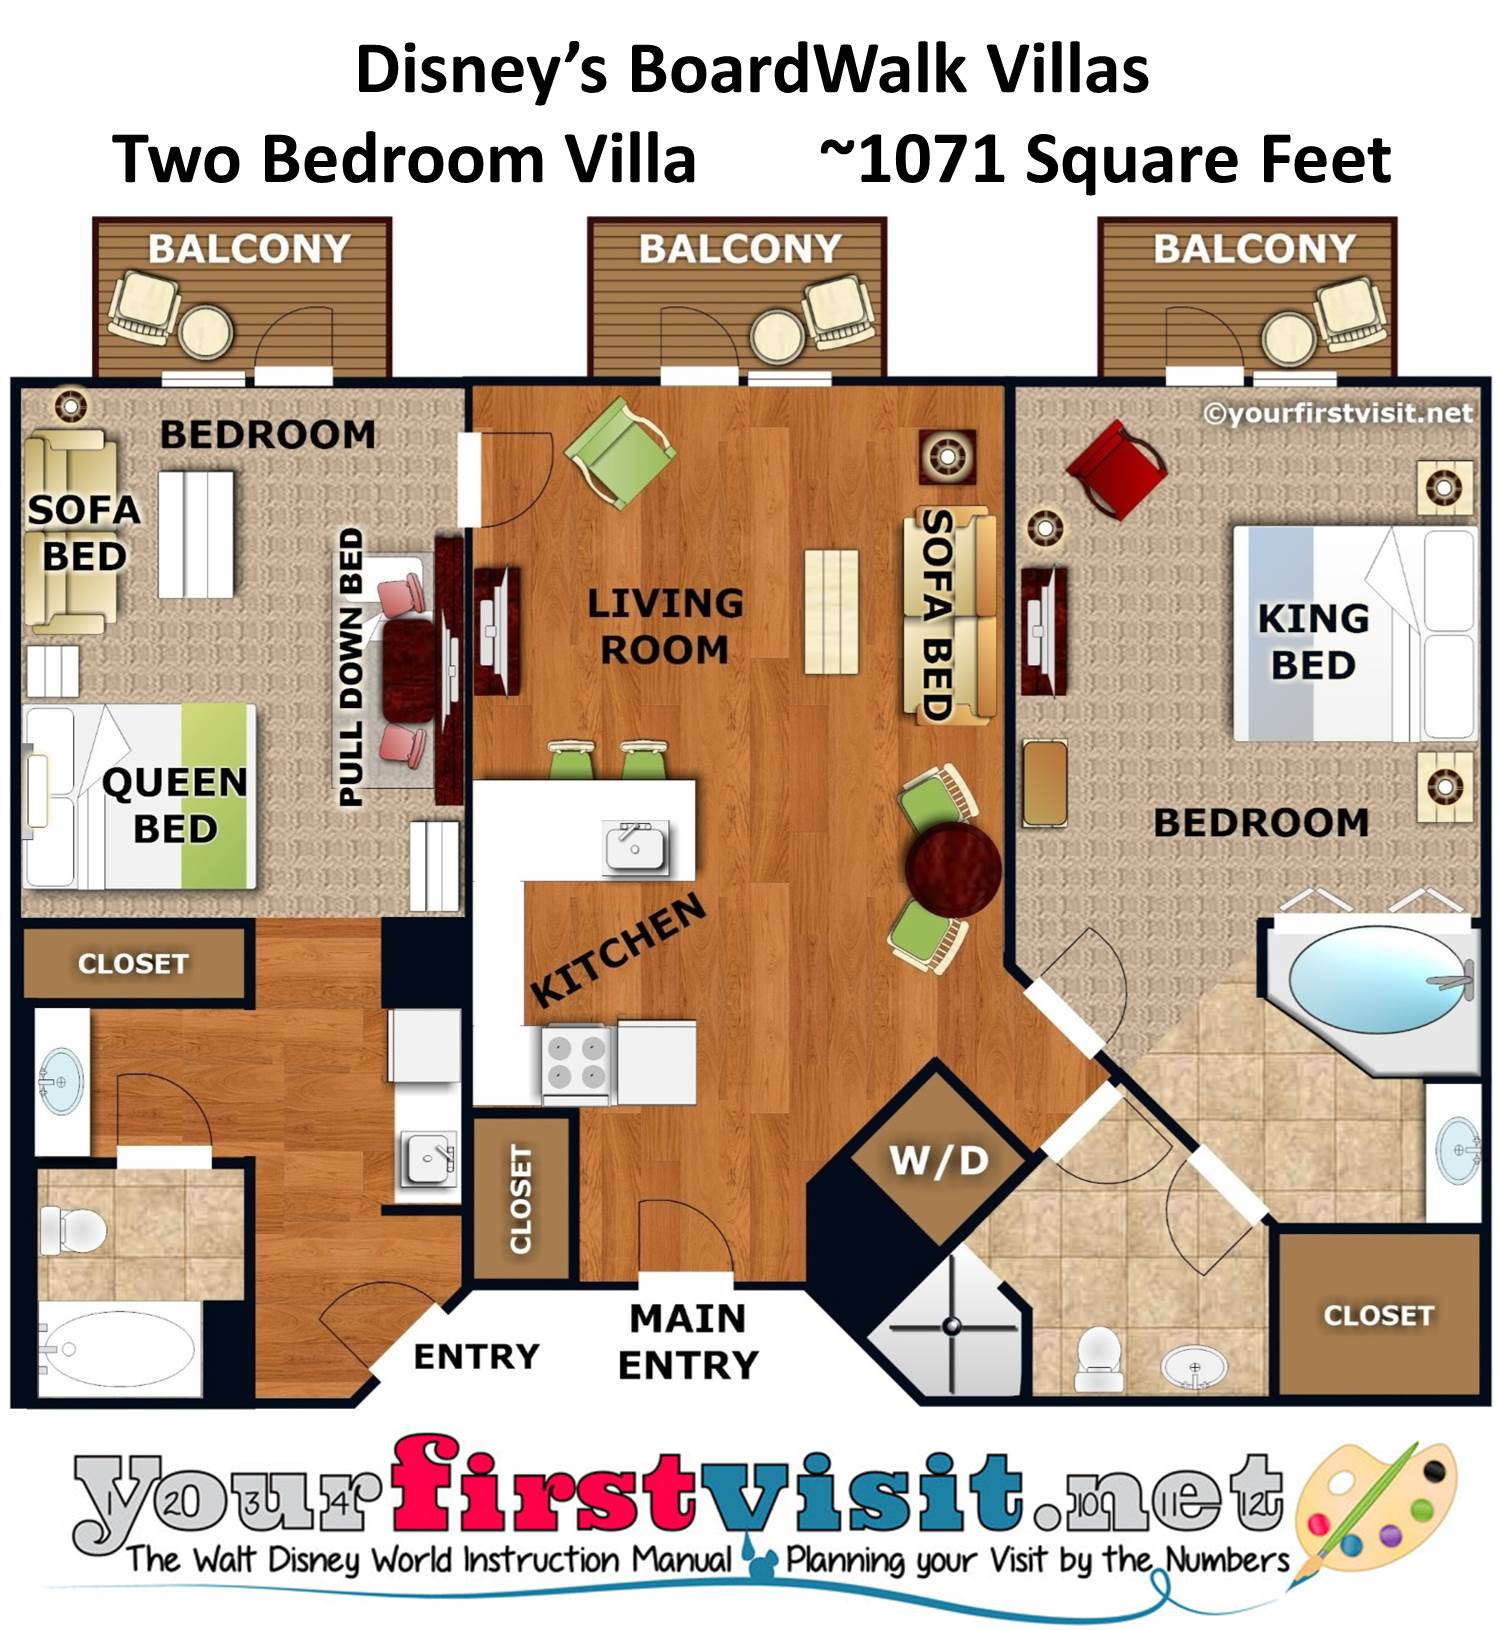 Kidani Village 2 Bedroom Villa Floor Plan Photo Tour Of The Master Bedroom And Baths Of A One